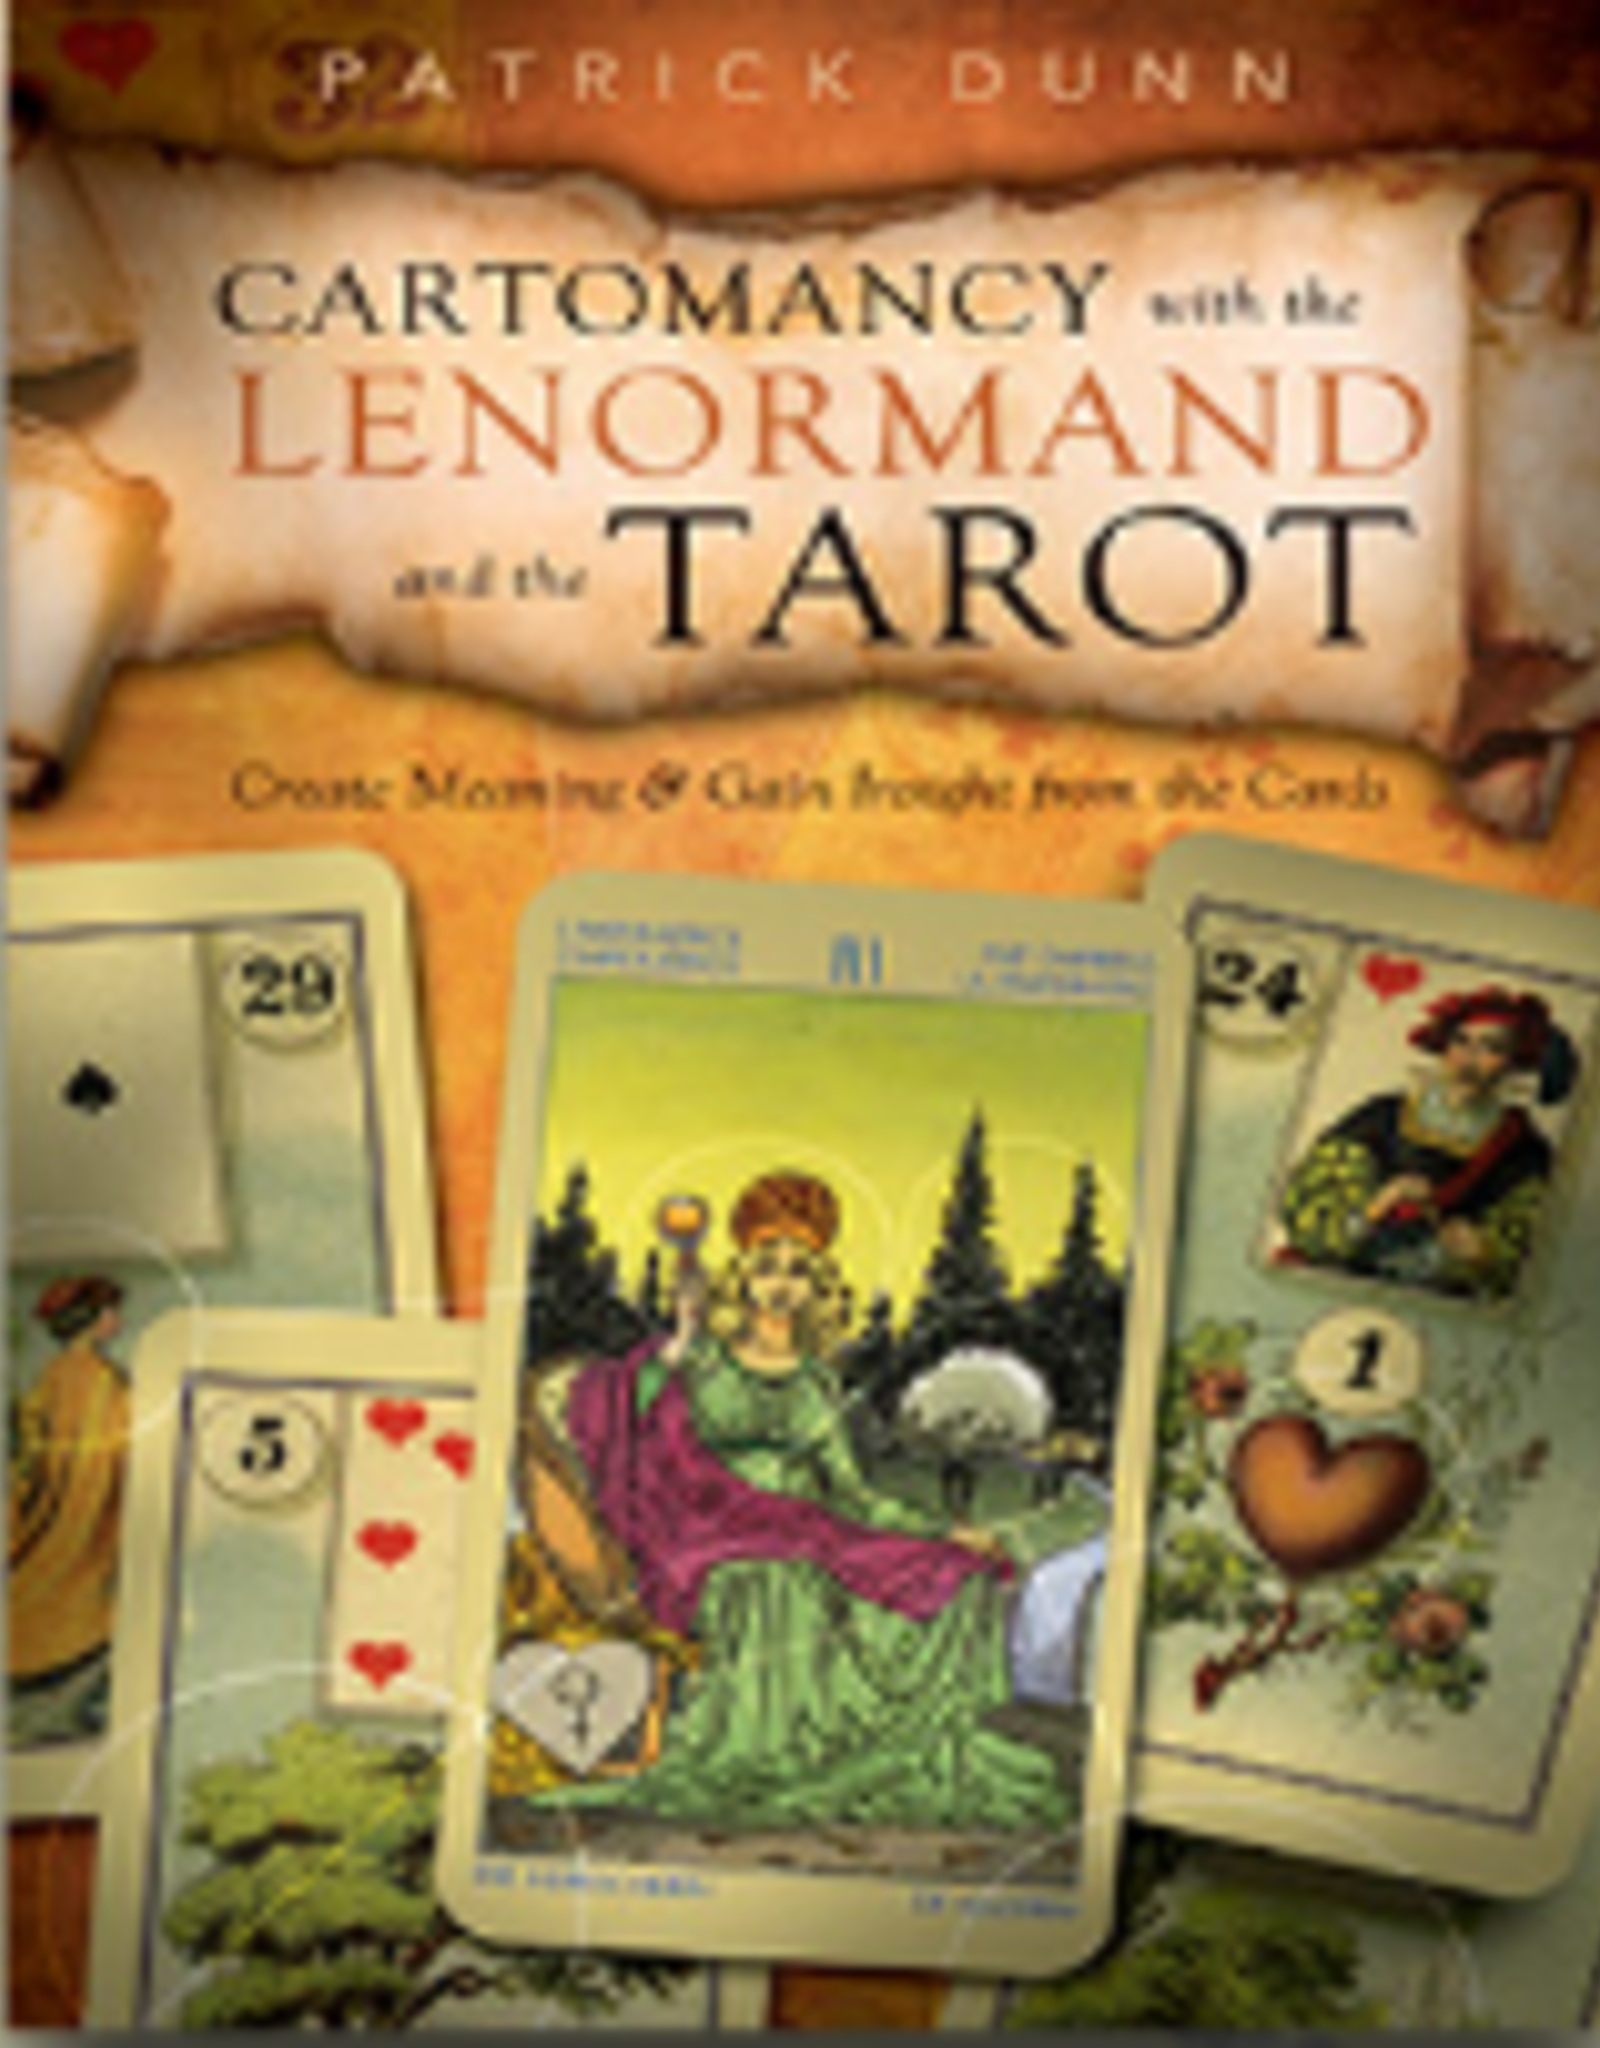 Patrick Dunn Cartomancy with the Lenormand and the Tarot by Patrick Dunn